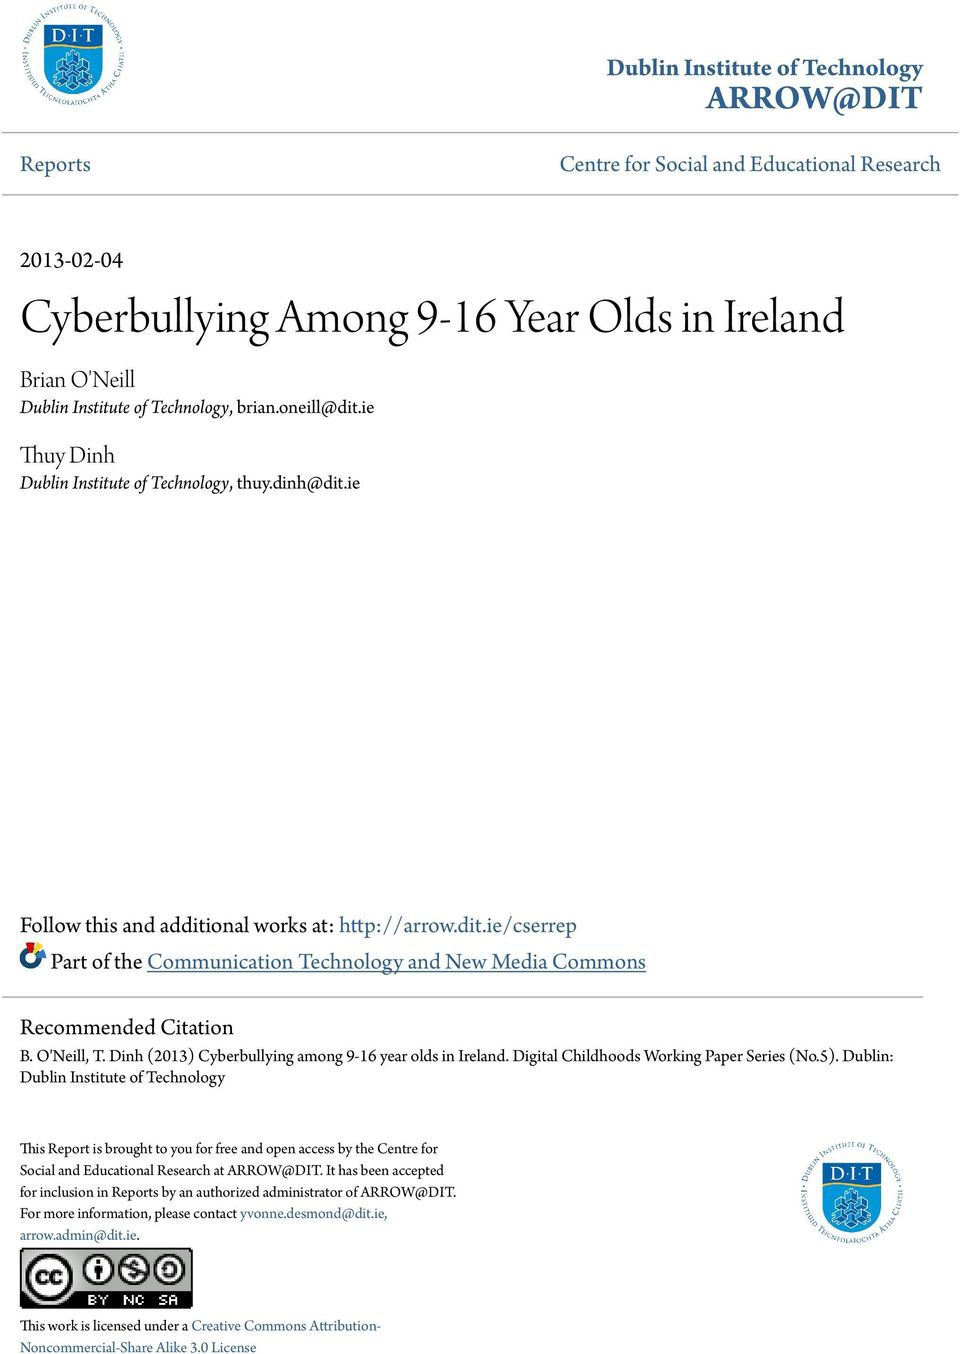 O'Neill, T. Dinh (2013) Cyberbullying among 9-16 year olds in Ireland. Digital Childhoods Working Paper Series (No.5).